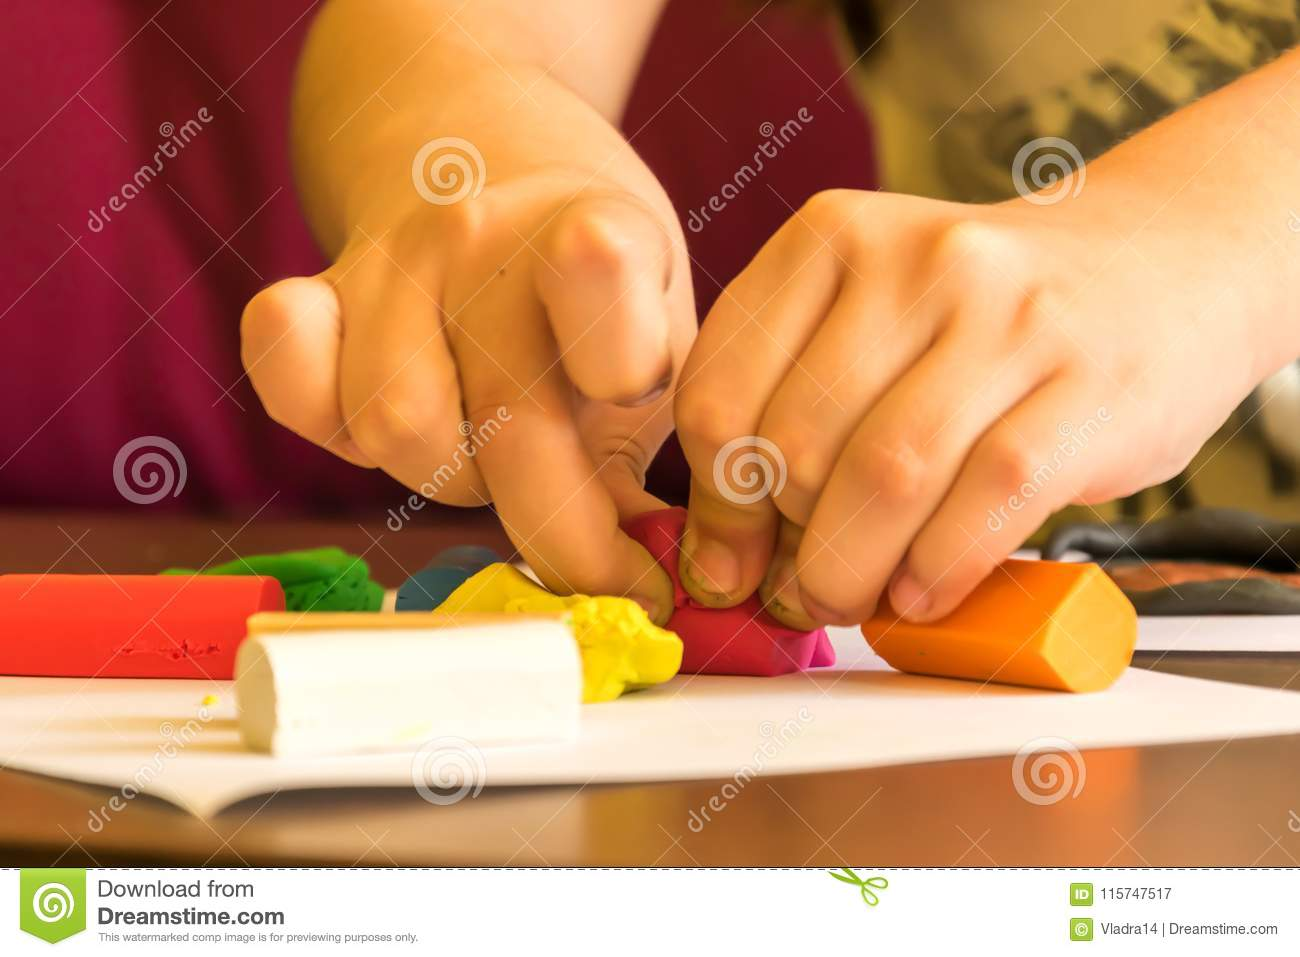 child modeling plasticine for school art class stock image image